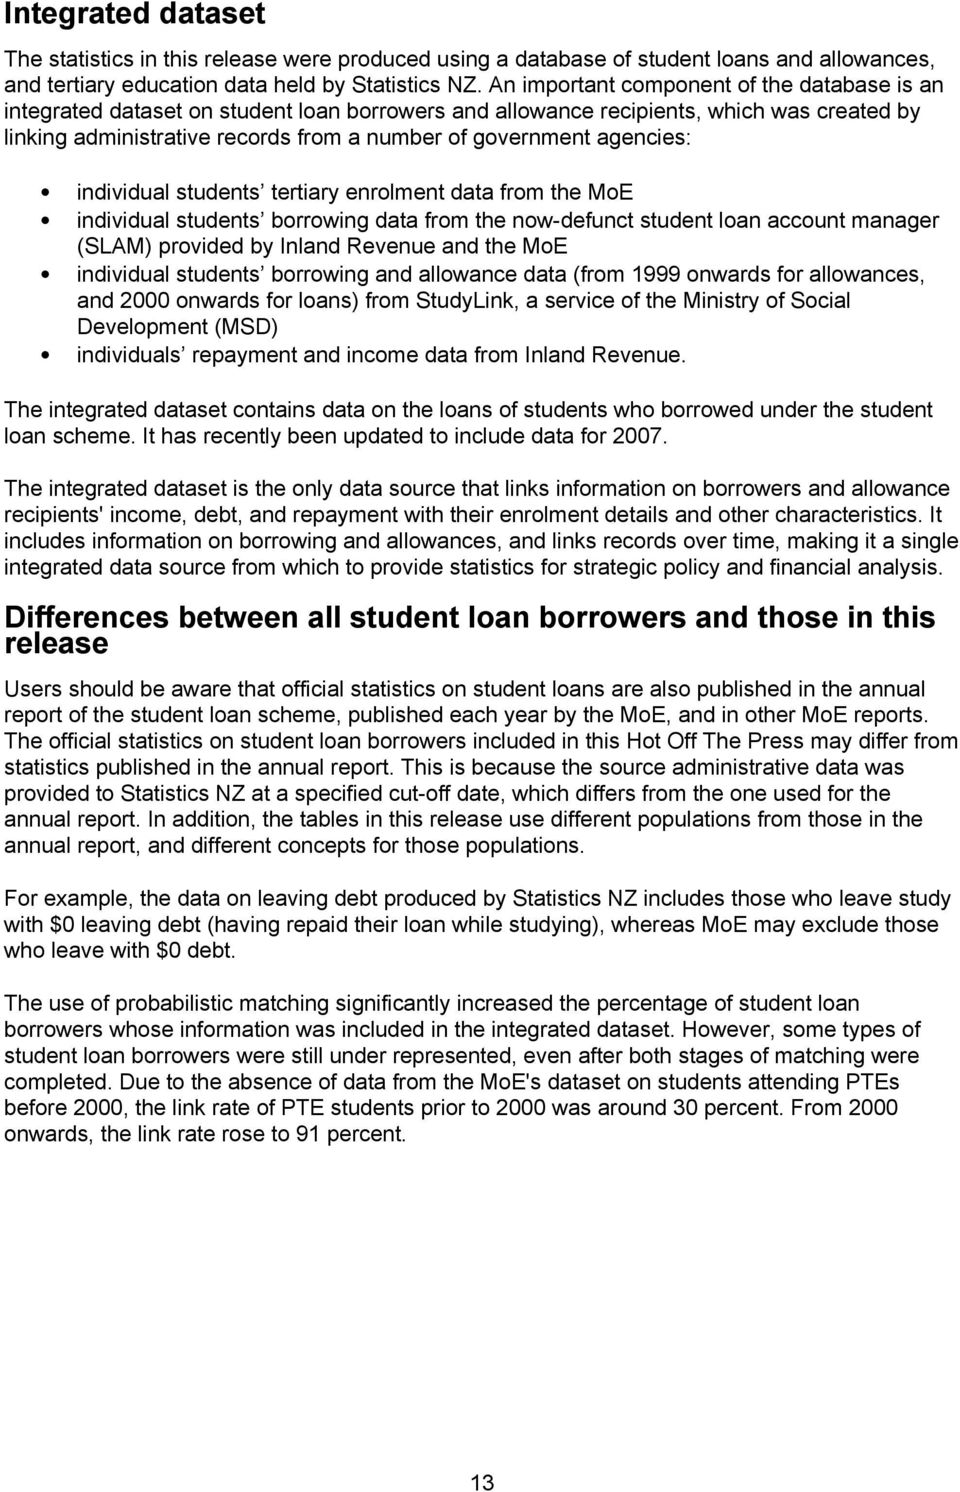 agencies: individual students tertiary enrolment data from the MoE individual students borrowing data from the now-defunct student loan account manager (SLAM) provided by Inland Revenue and the MoE